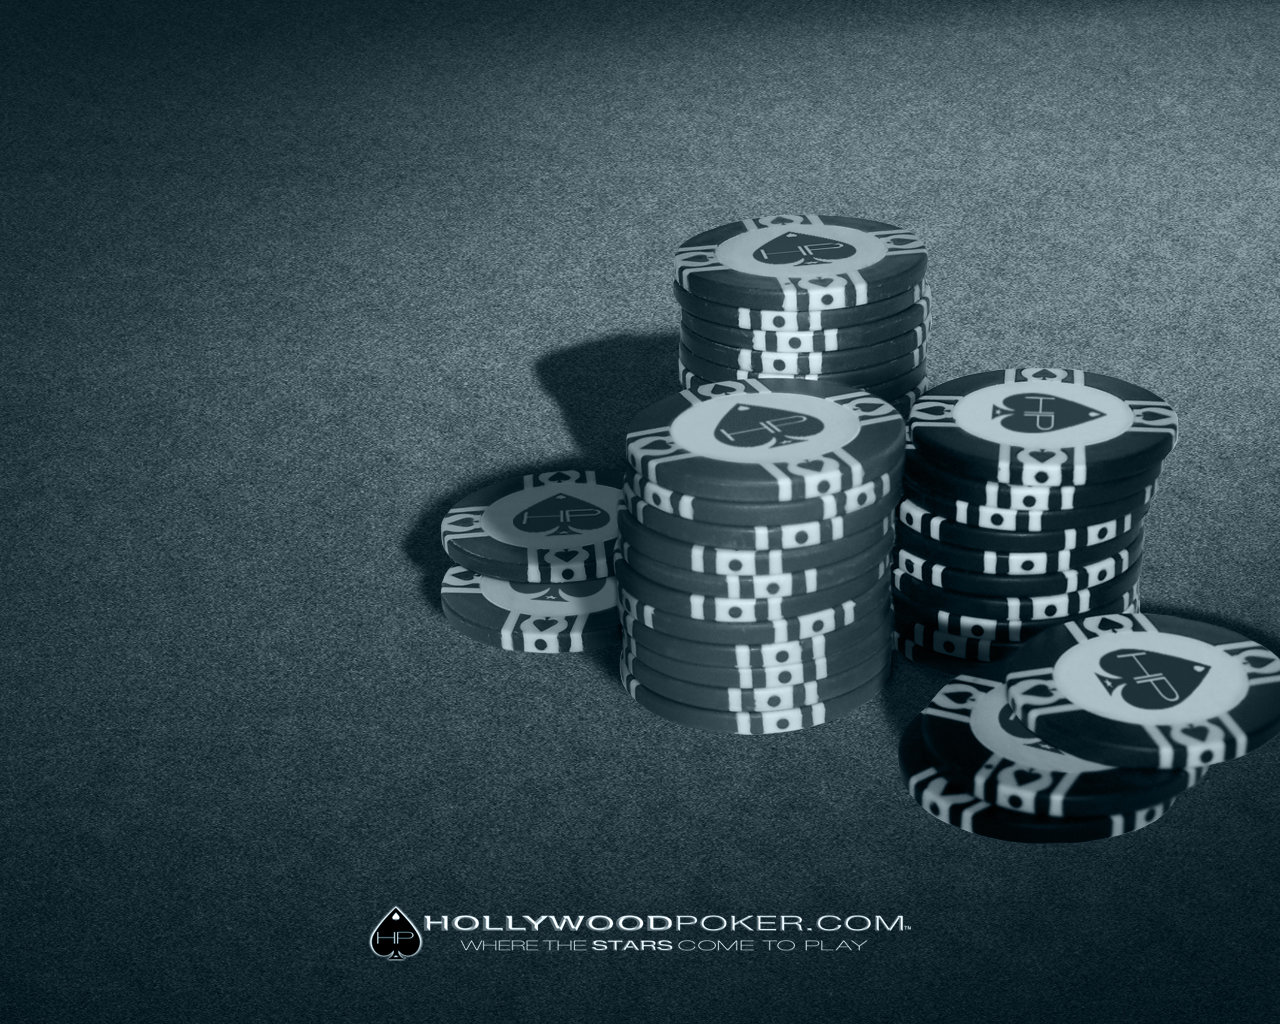 Casino Is Your Worst Enemy 8 Ways To Defeat It